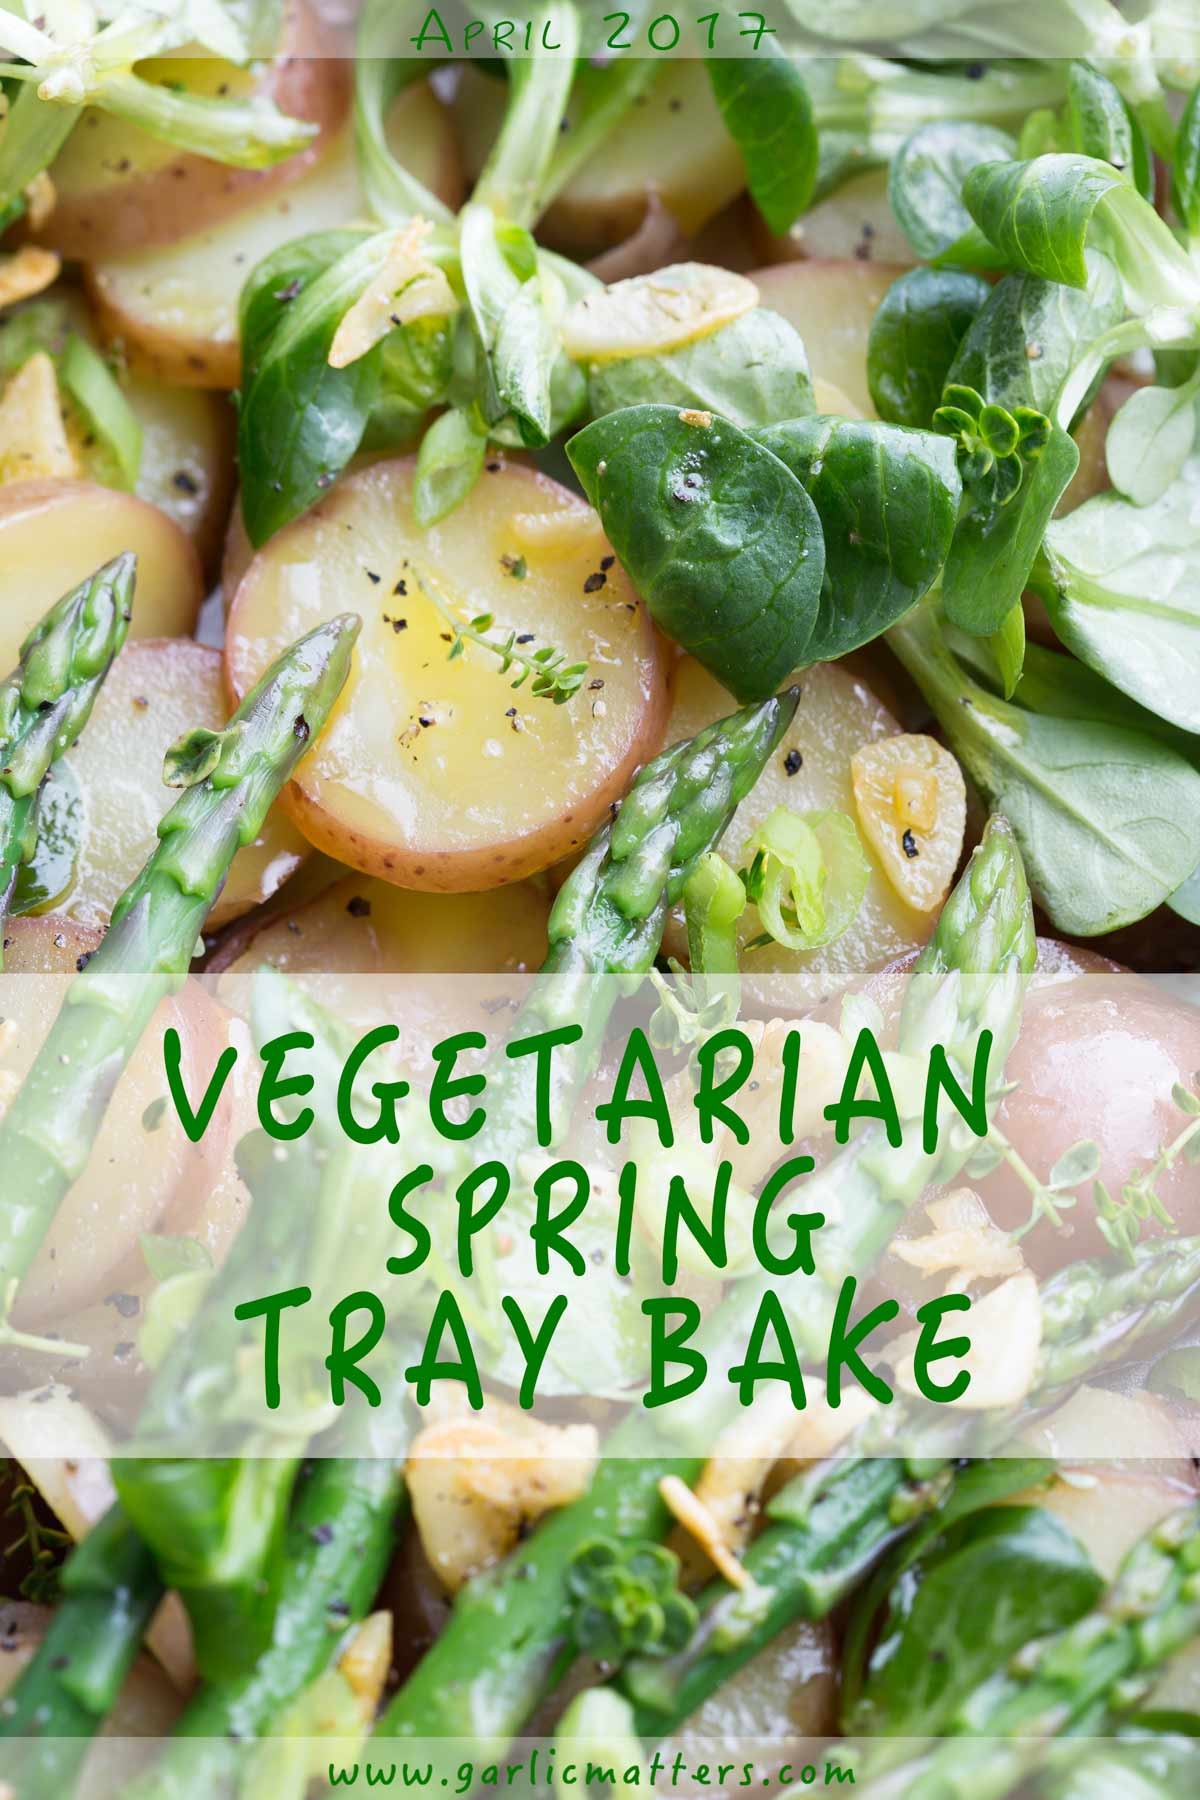 Vegetarian Spring Tray Bake is a real Spring lunch feast crowd pleaser. Simply delicious!